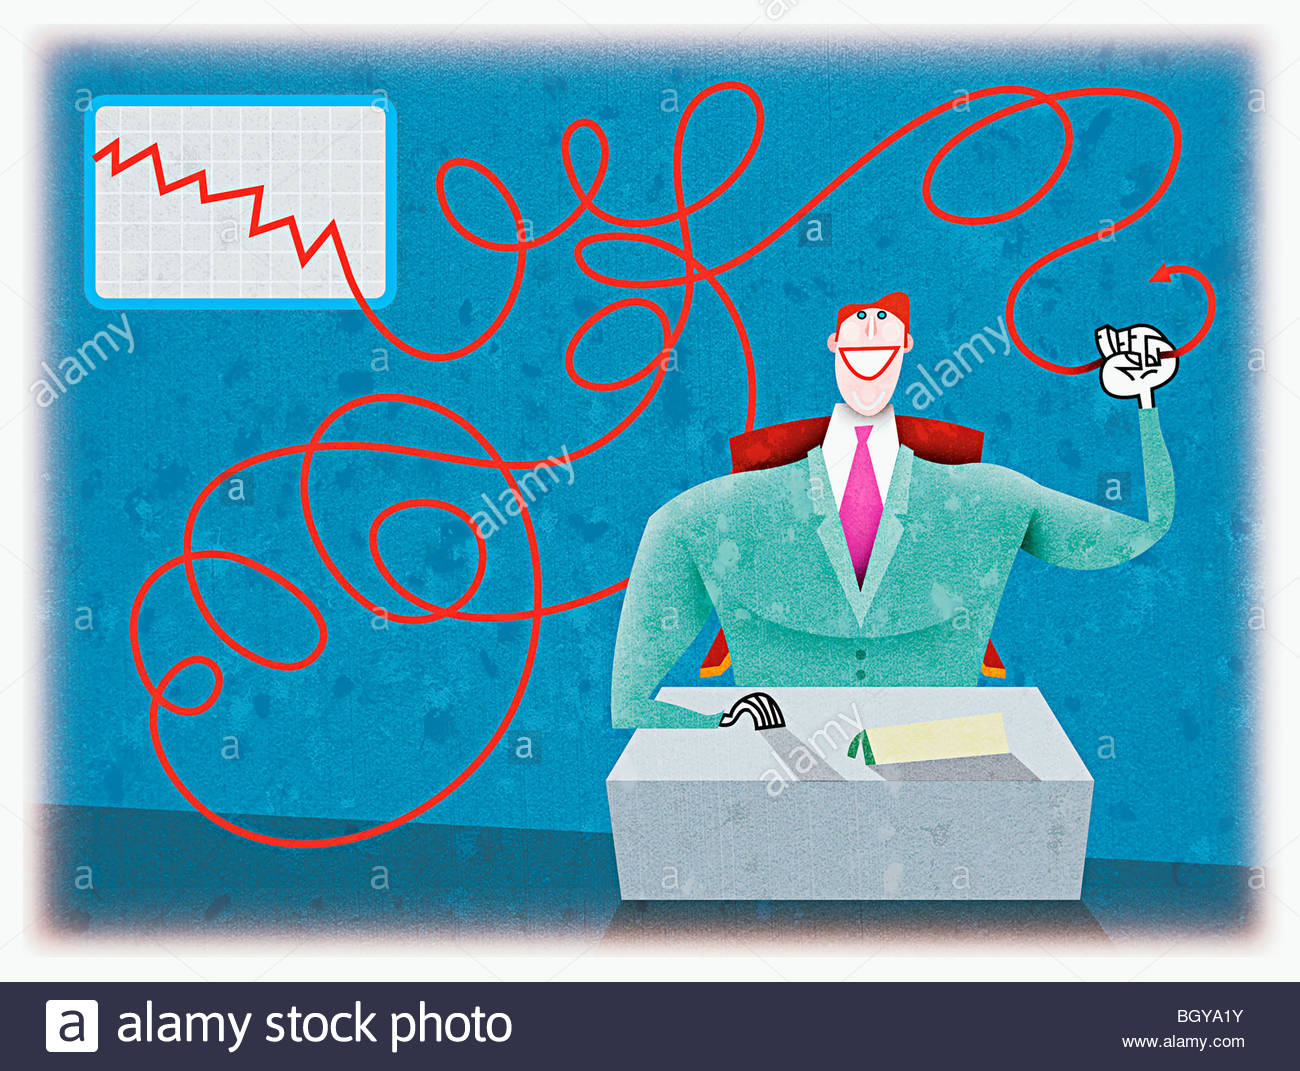 Businessman holding line graph - Stock Image